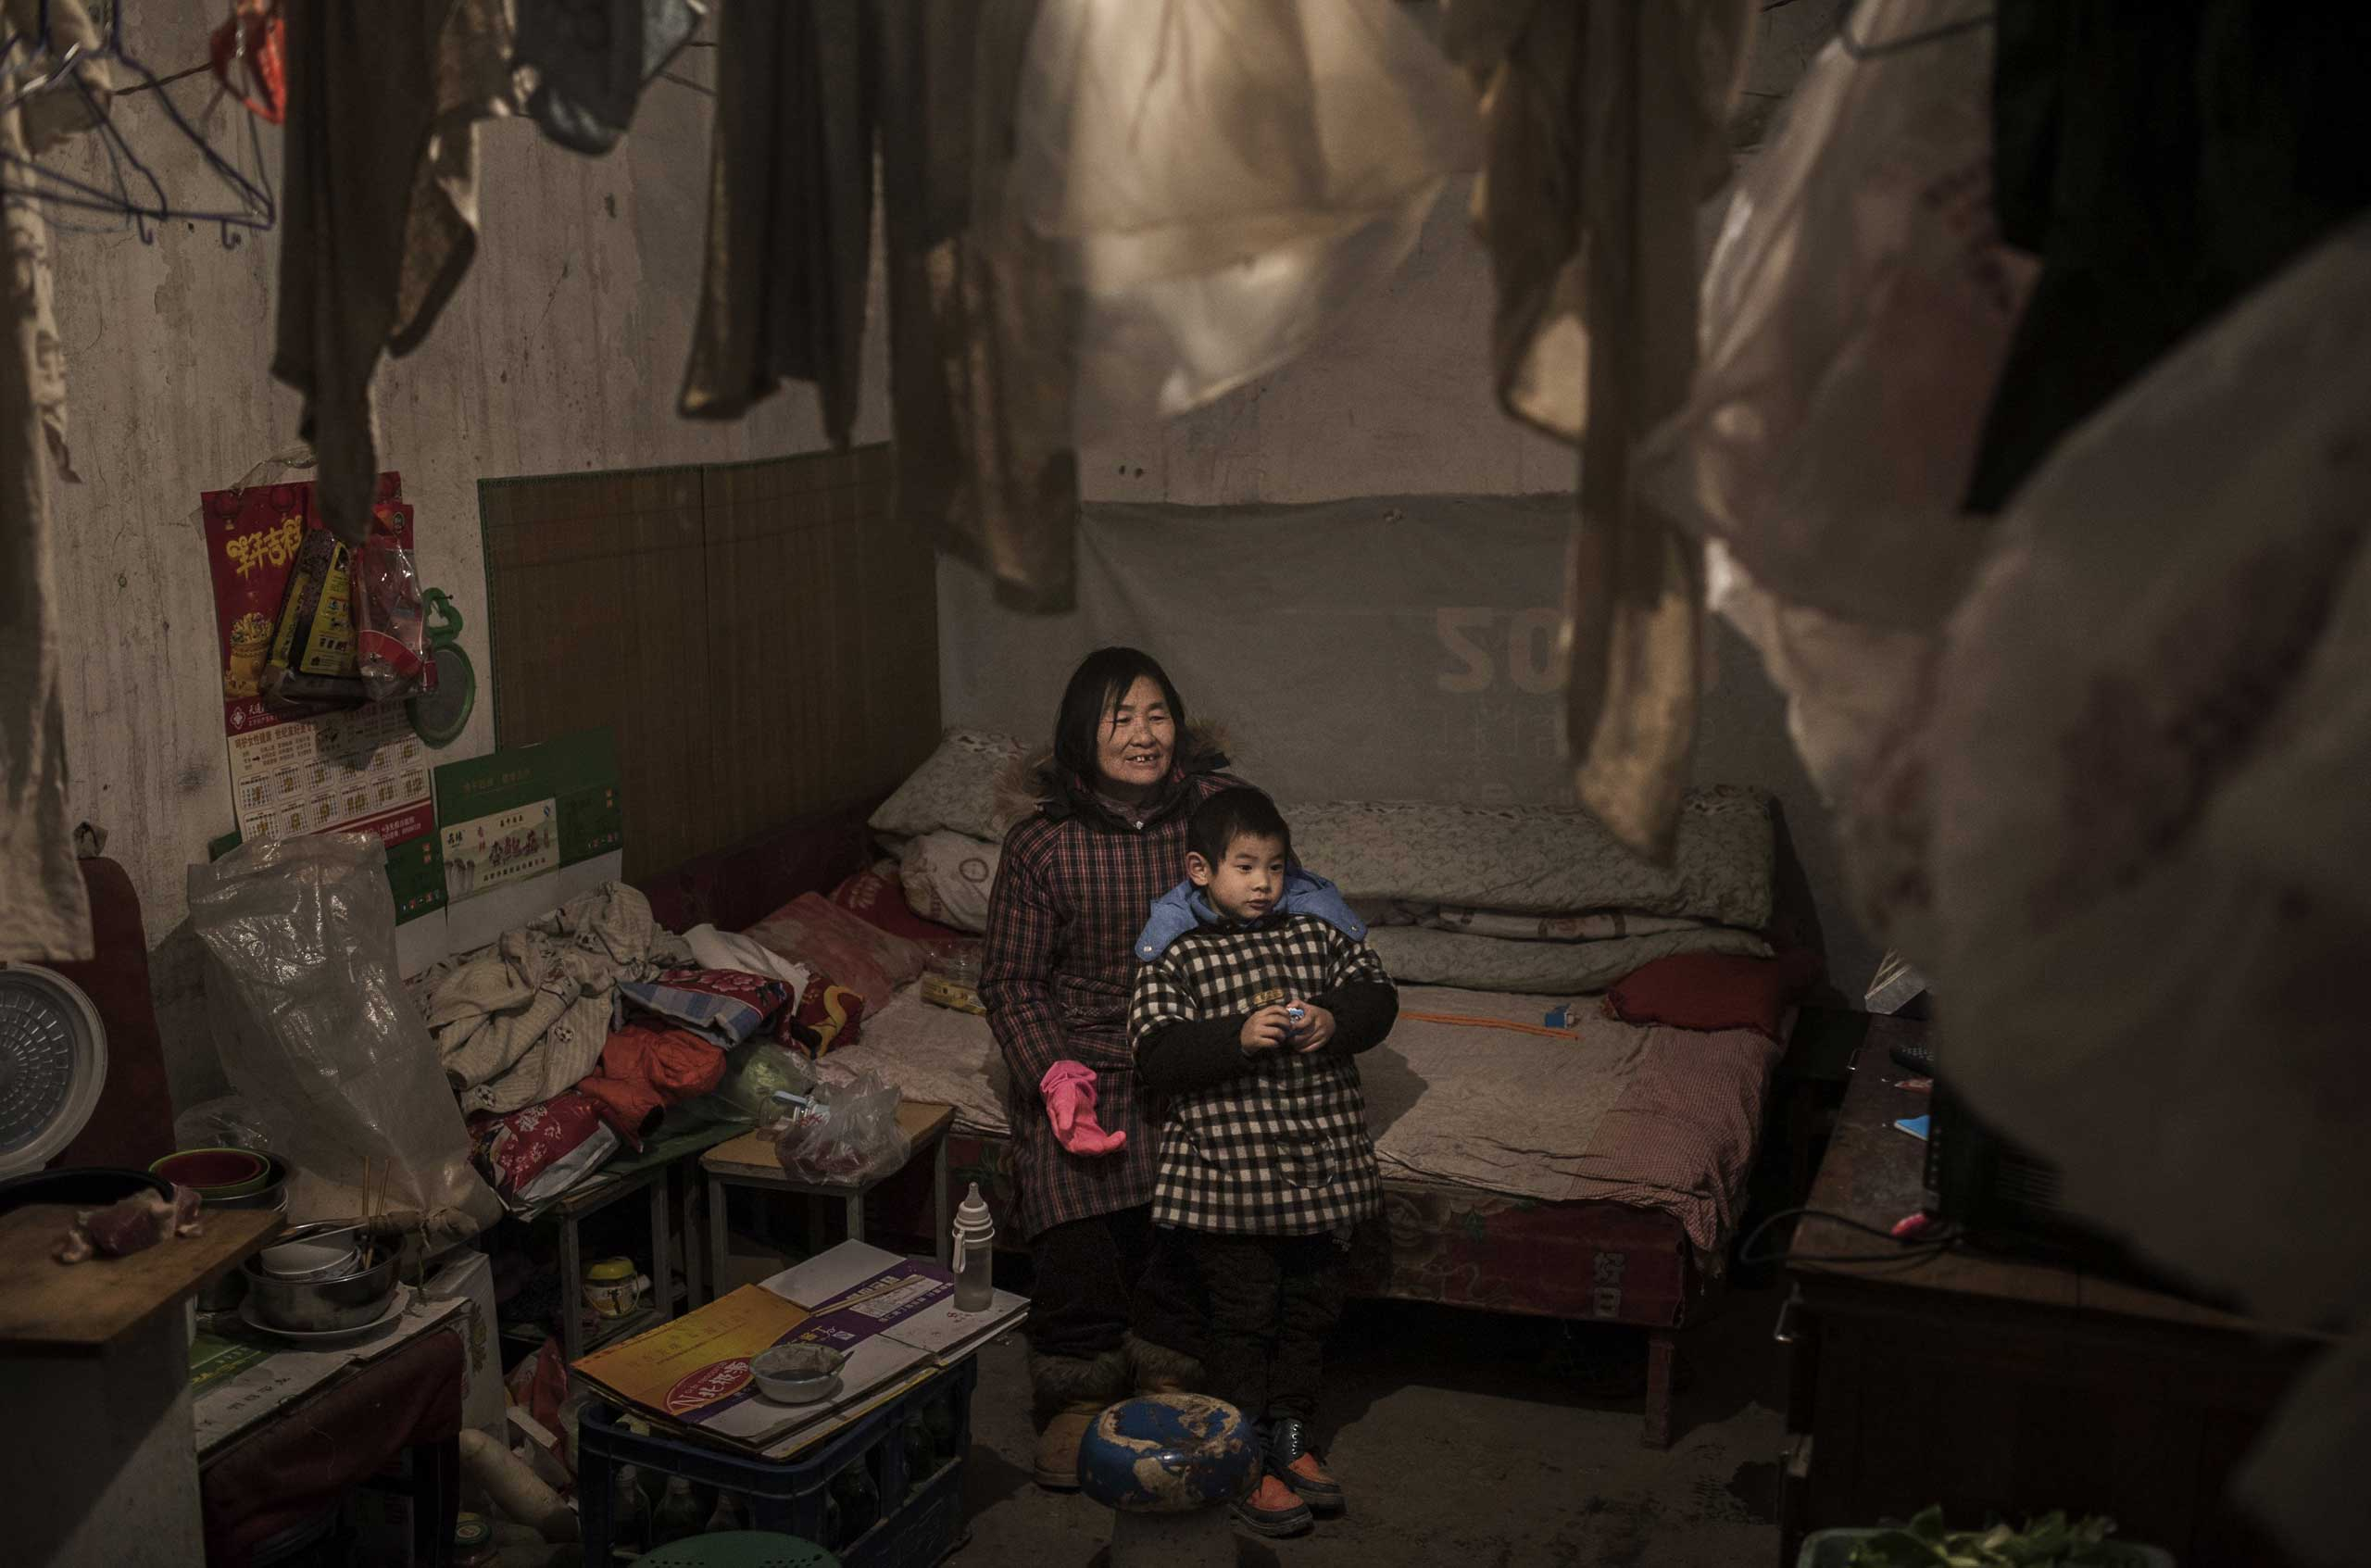 A laborer watches television with her grandson in the Dong Xiao Kou scrap village on Dec. 11, 2014 in Beijing.